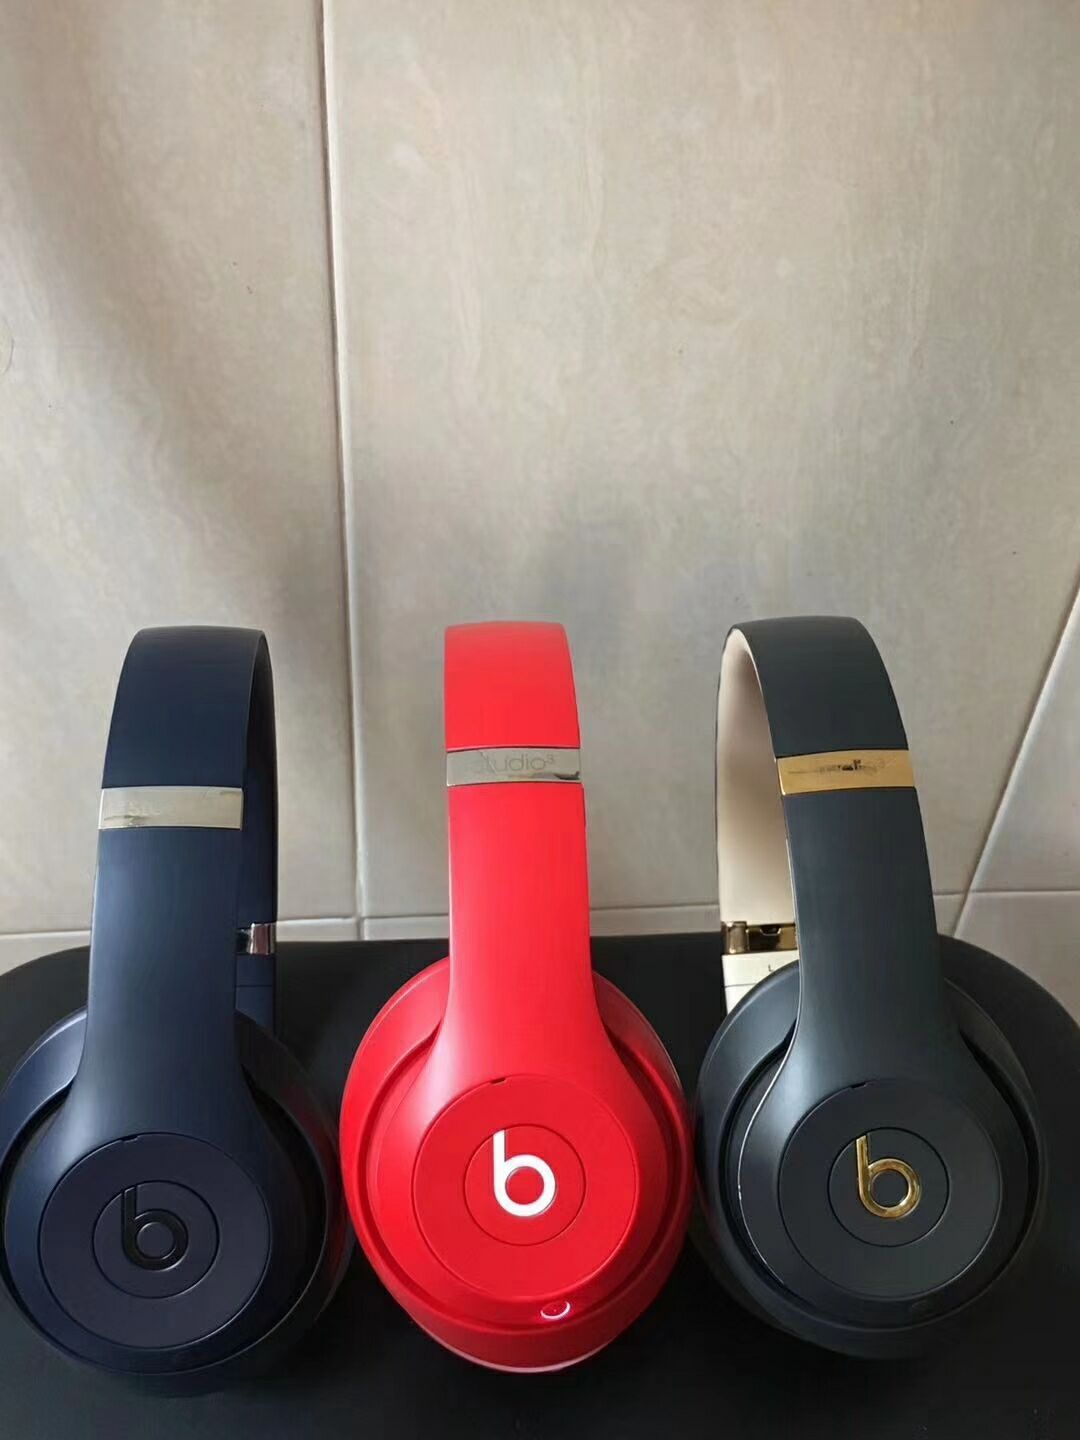 c74369d8ace Beats solo 2 wireless headphone contact us by email: money7891 ...